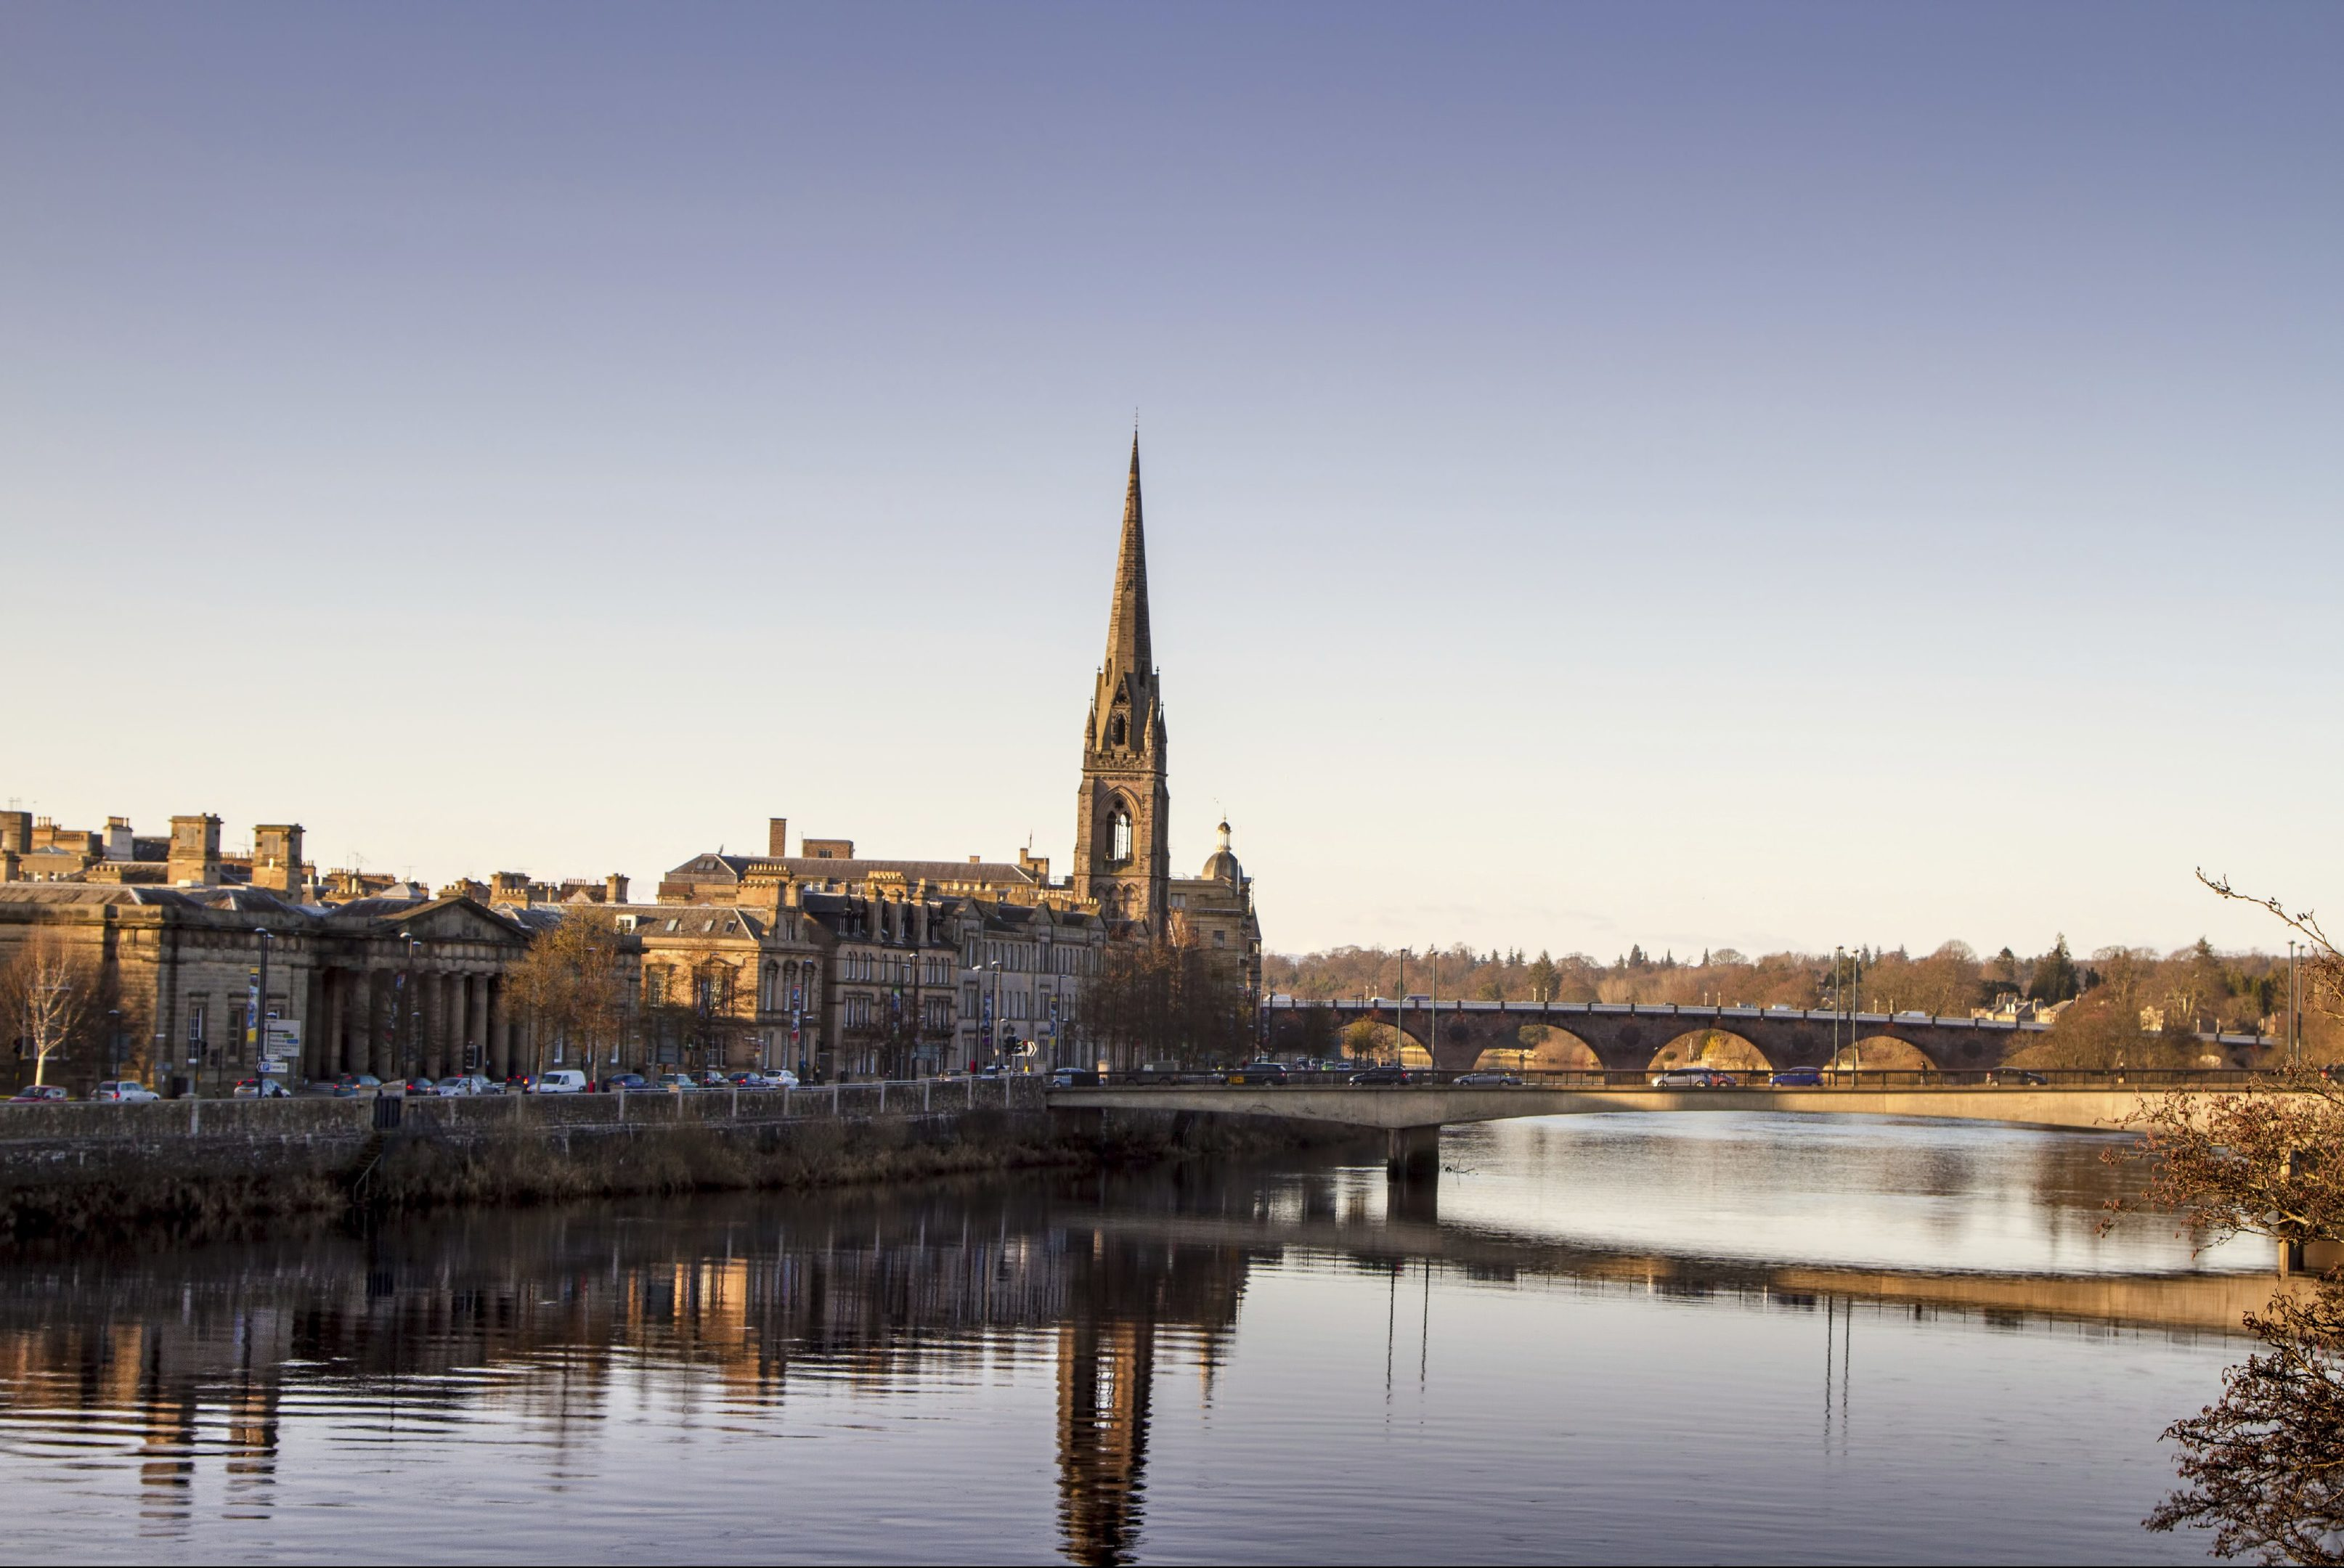 The River Tay at Perth.